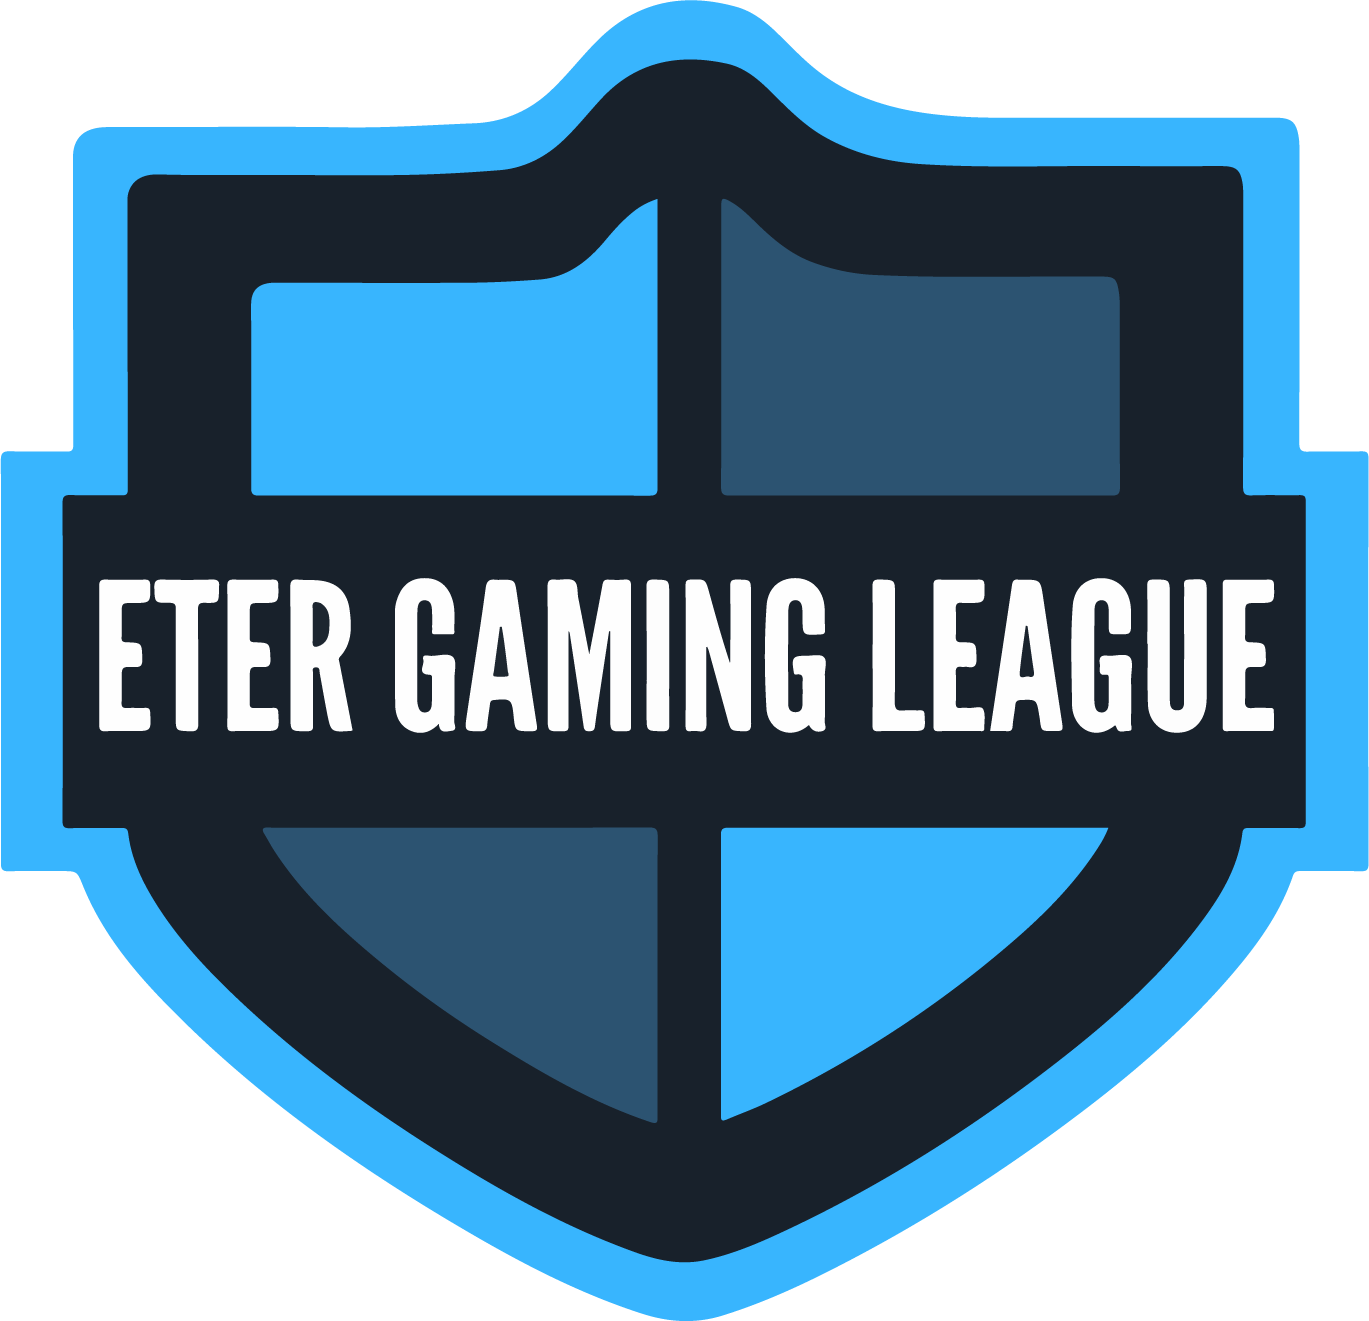 Eter Gaming League